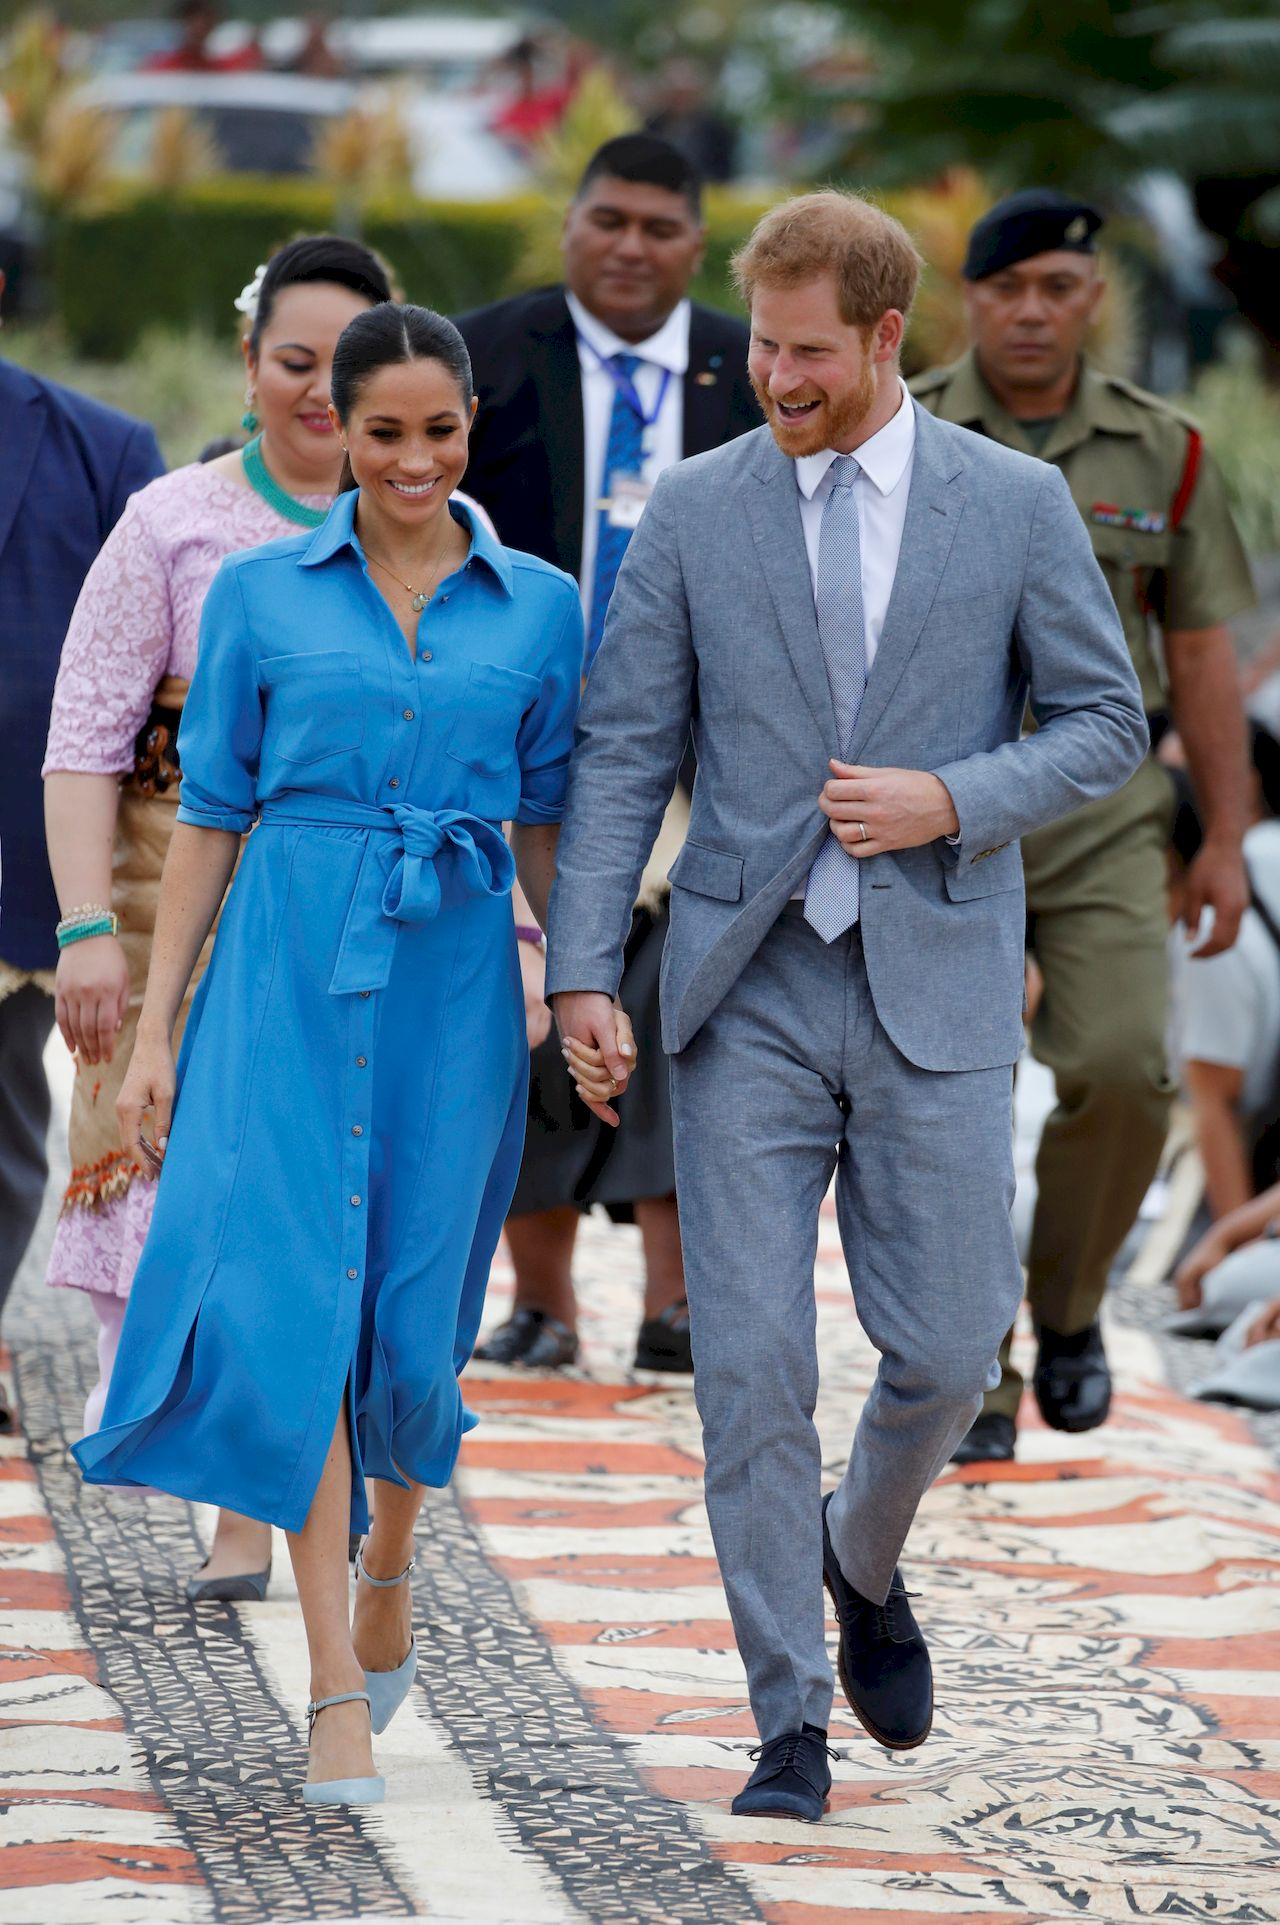 Britain's Prince Harry and Meghan, Duchess of Sussex walk together, ahead of Tonga's Princess Angelika, as they depart from Fua'amotu International Airport in Tonga